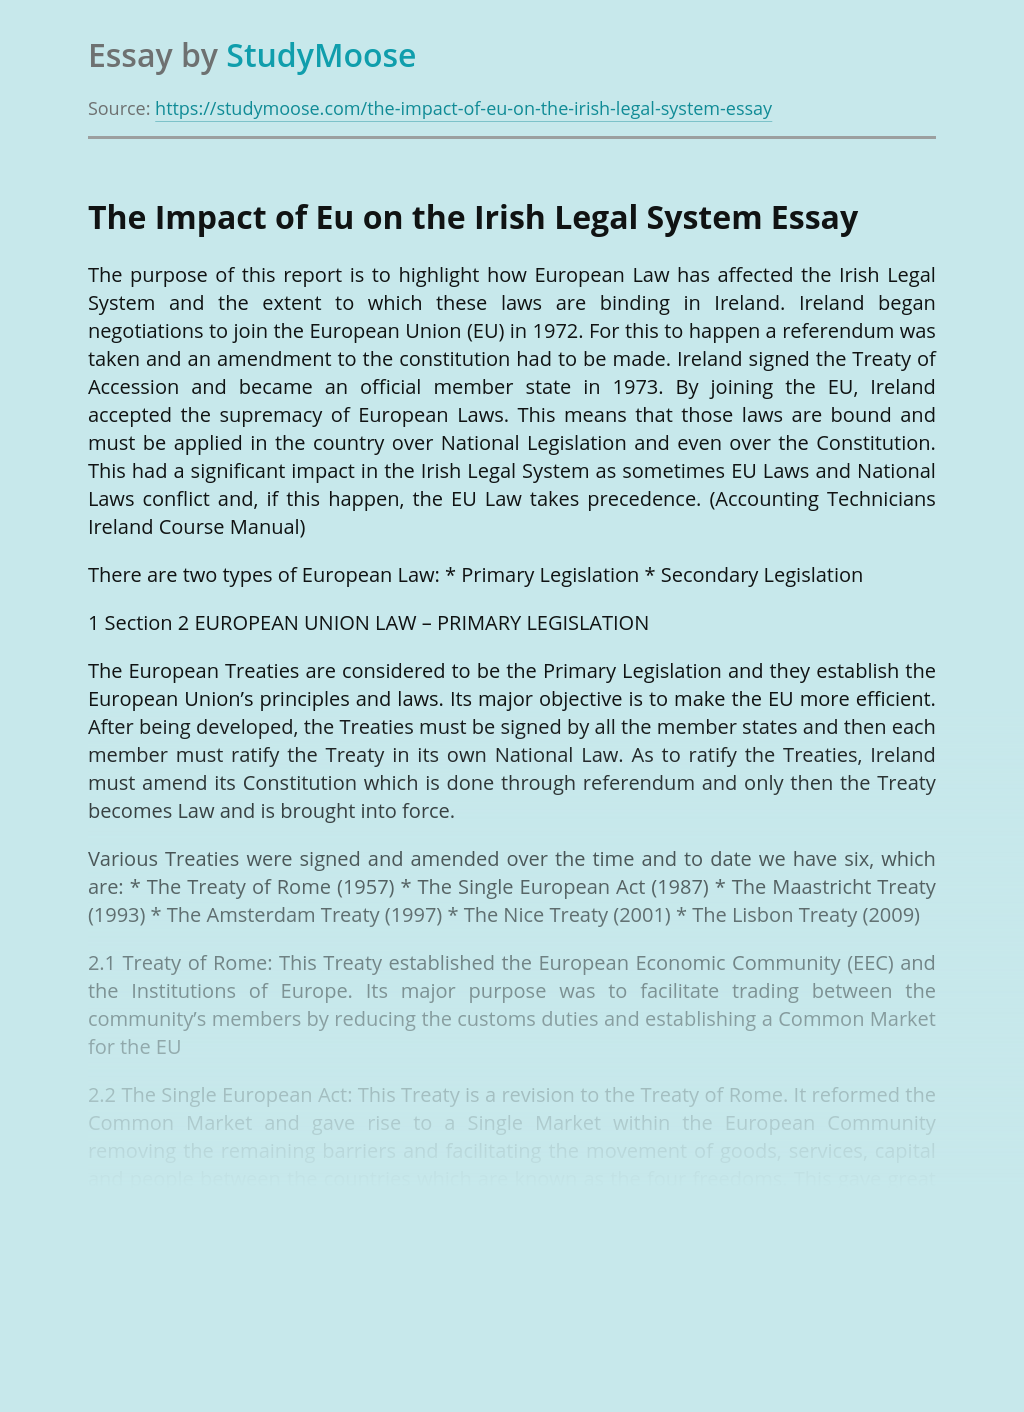 The Impact of EU on the Irish Legal System